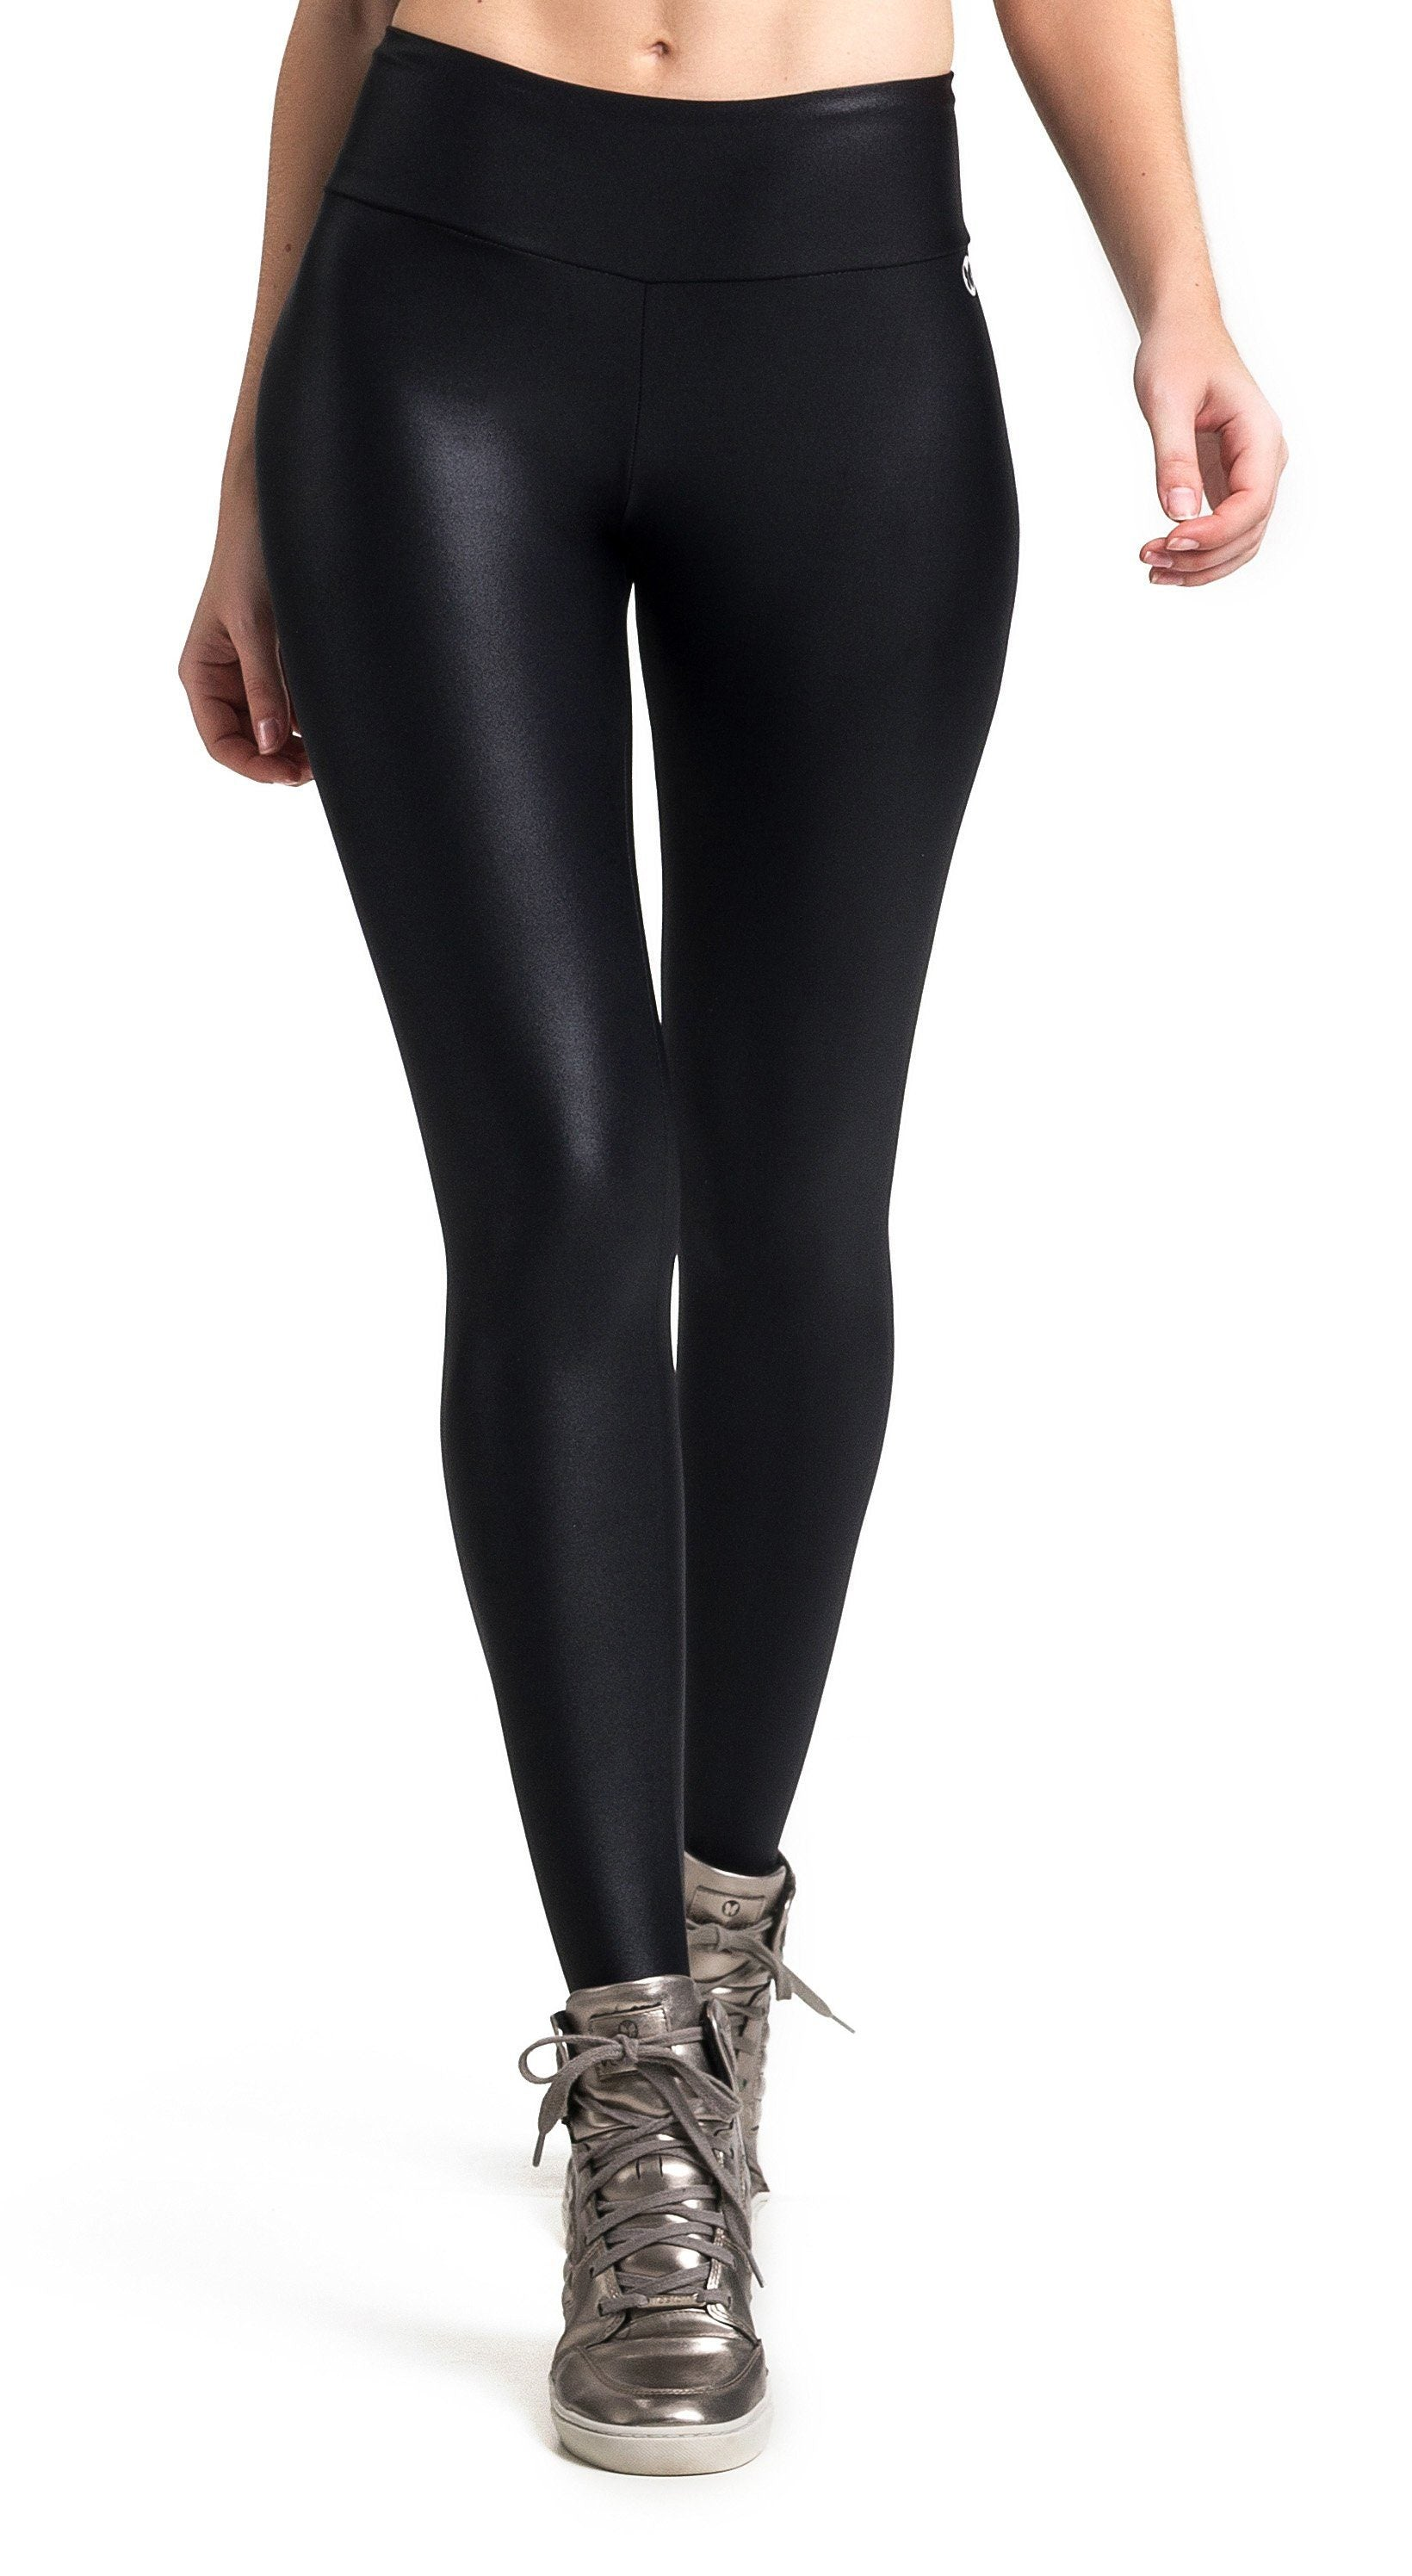 Brazilian Workout Legging - Ruched Booty Up Shiny Black - Top Rio Shop 5cebce644923